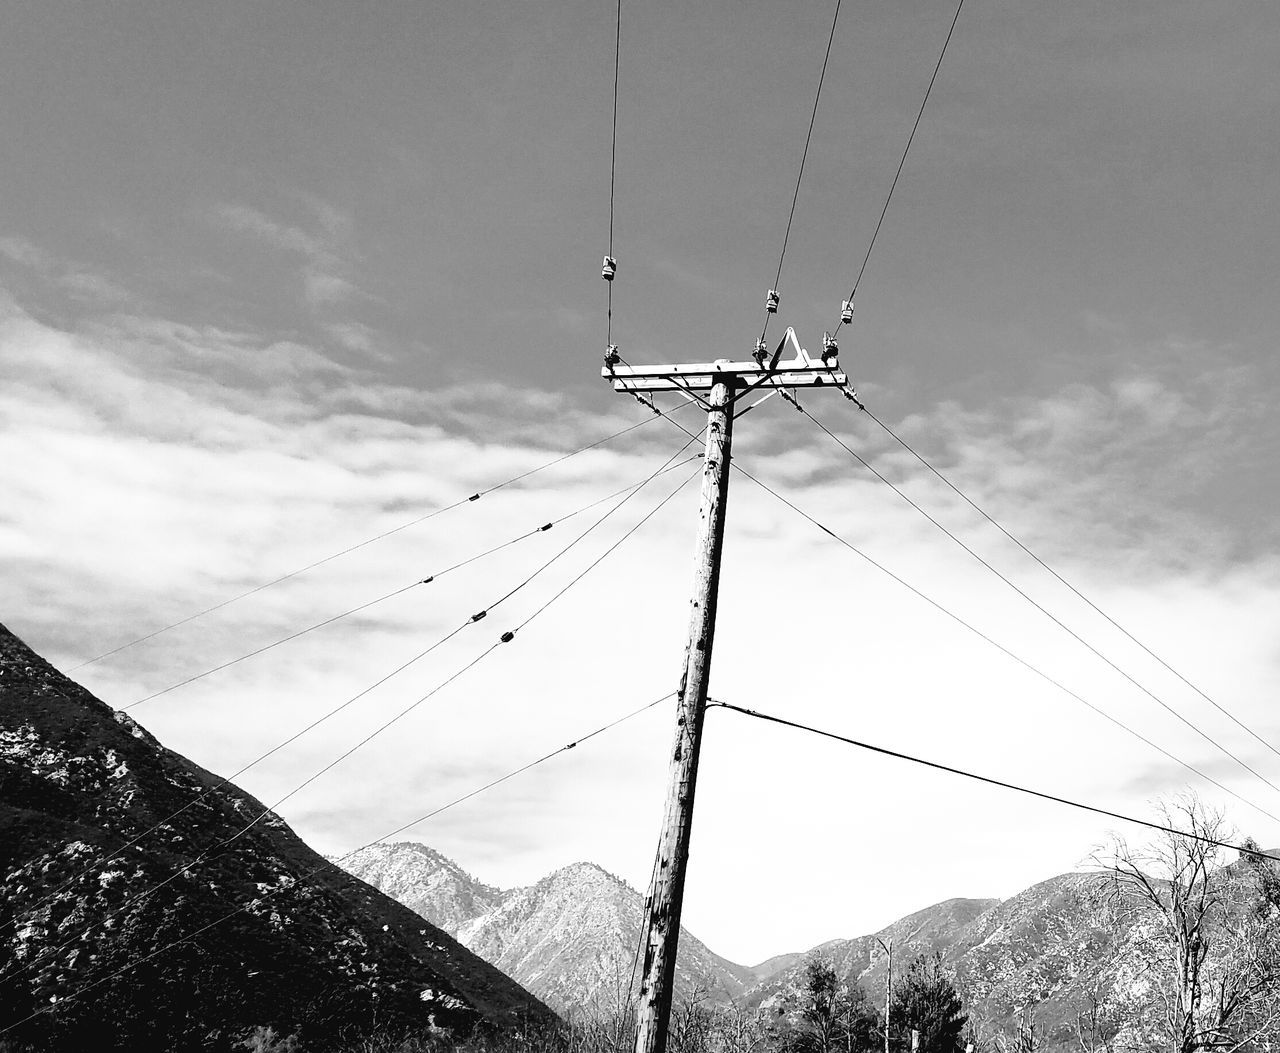 Black And White Connection Technology Outdoors Low Angle View Cable No People Day Cloud - Sky Tree Sky Nature Power Line  Power Pole Pattern, Texture, Shape And Form Copy Space Check This Out EyeEm Best Shots Beauty In Nature Fine Art Photography Mountains In Background Leisure Activity Vitality Tranquility Low Angle View Flying High